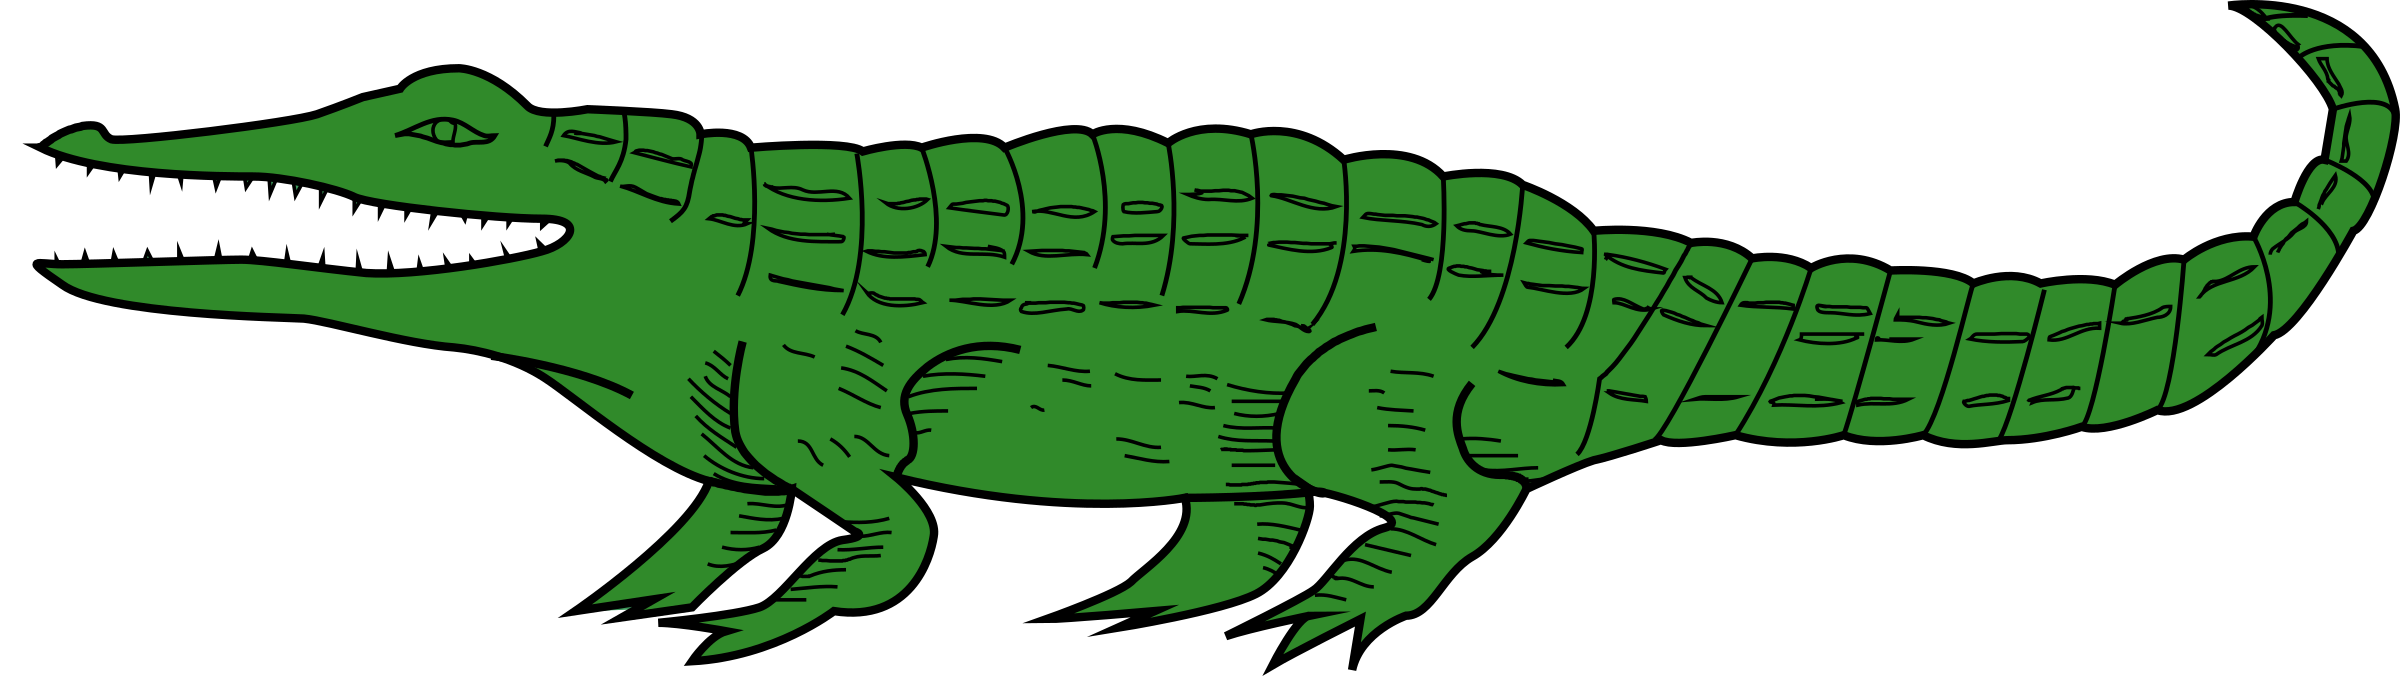 Crocodile Clipart River Clipart Crocodile River Transparent Free For Download On Webstockreview 2021